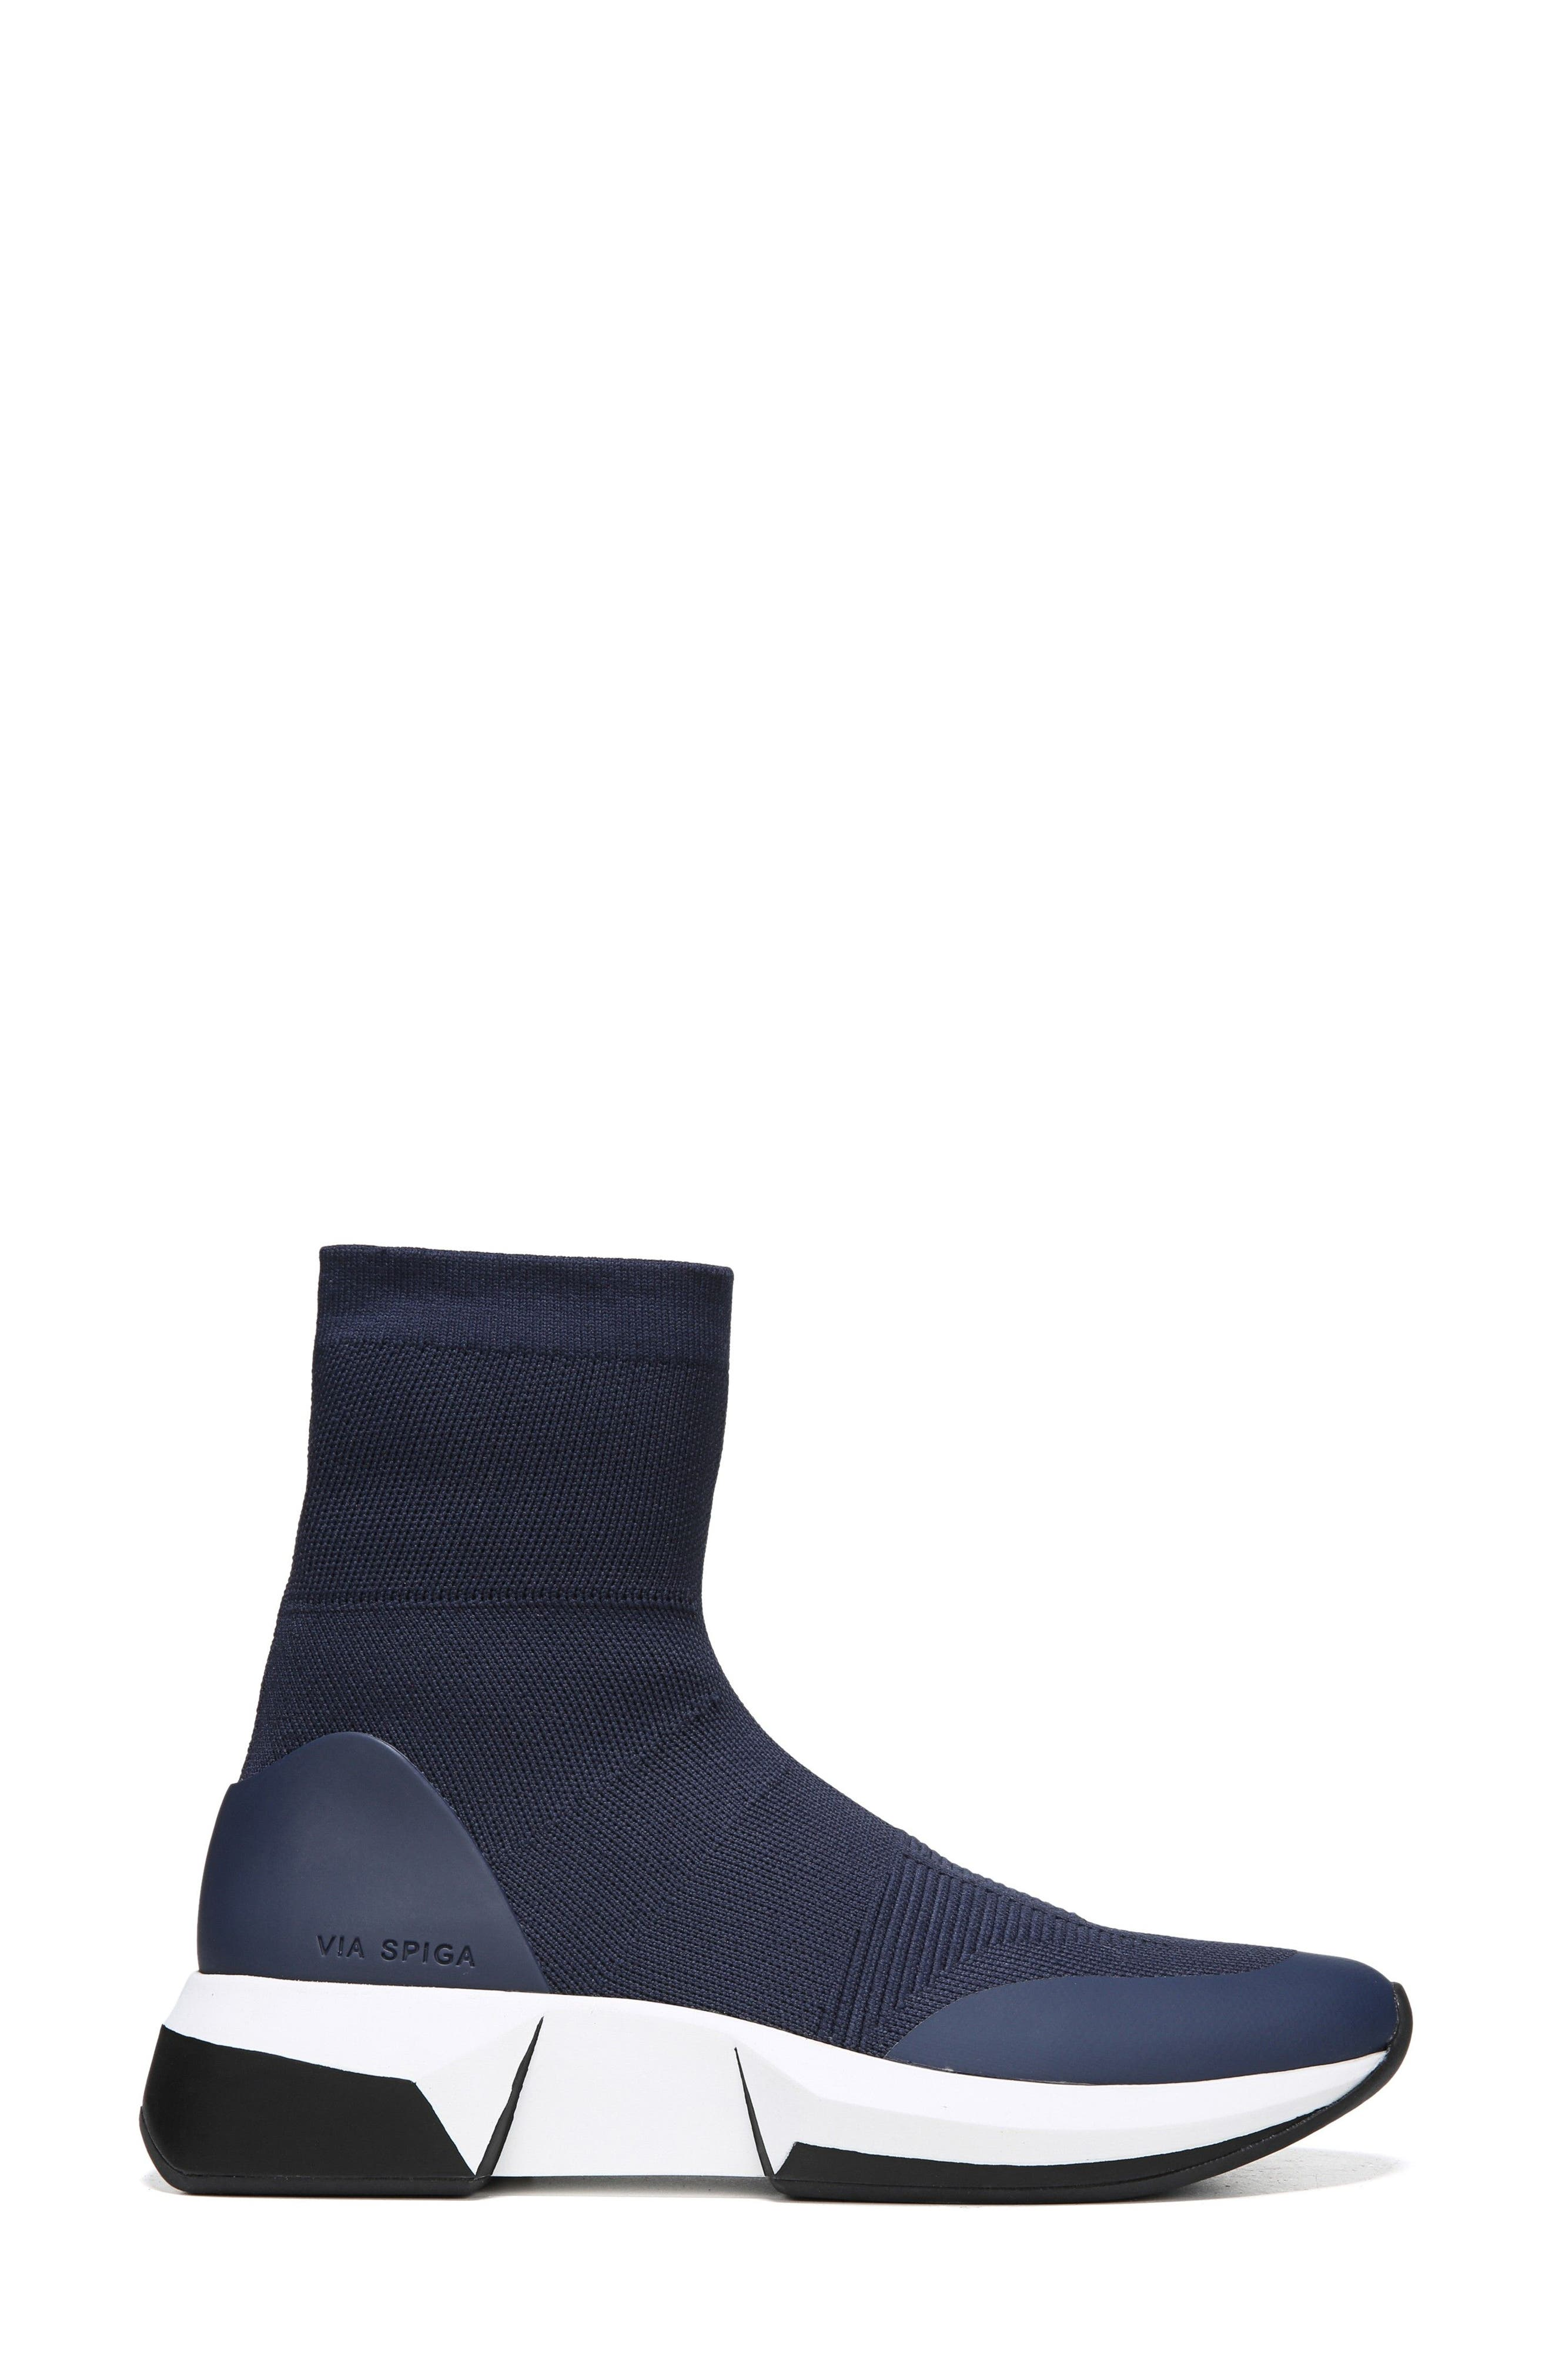 Verion High Top Sock Sneaker,                             Alternate thumbnail 5, color,                             Sapphire Fabric